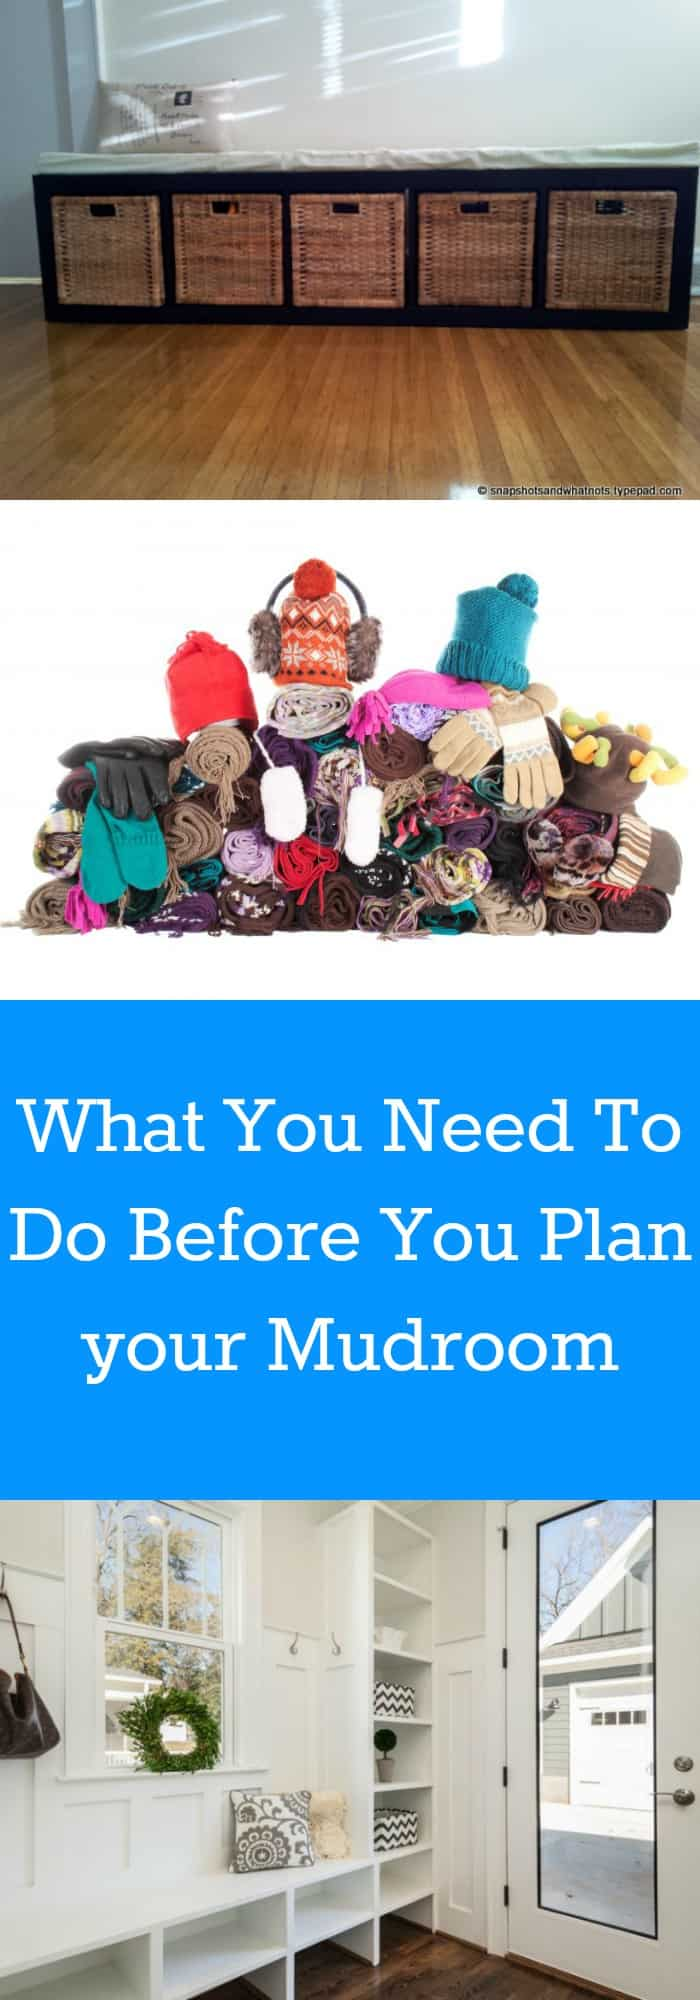 Organization--What You Need to Do Before You Plan Your Mudroom